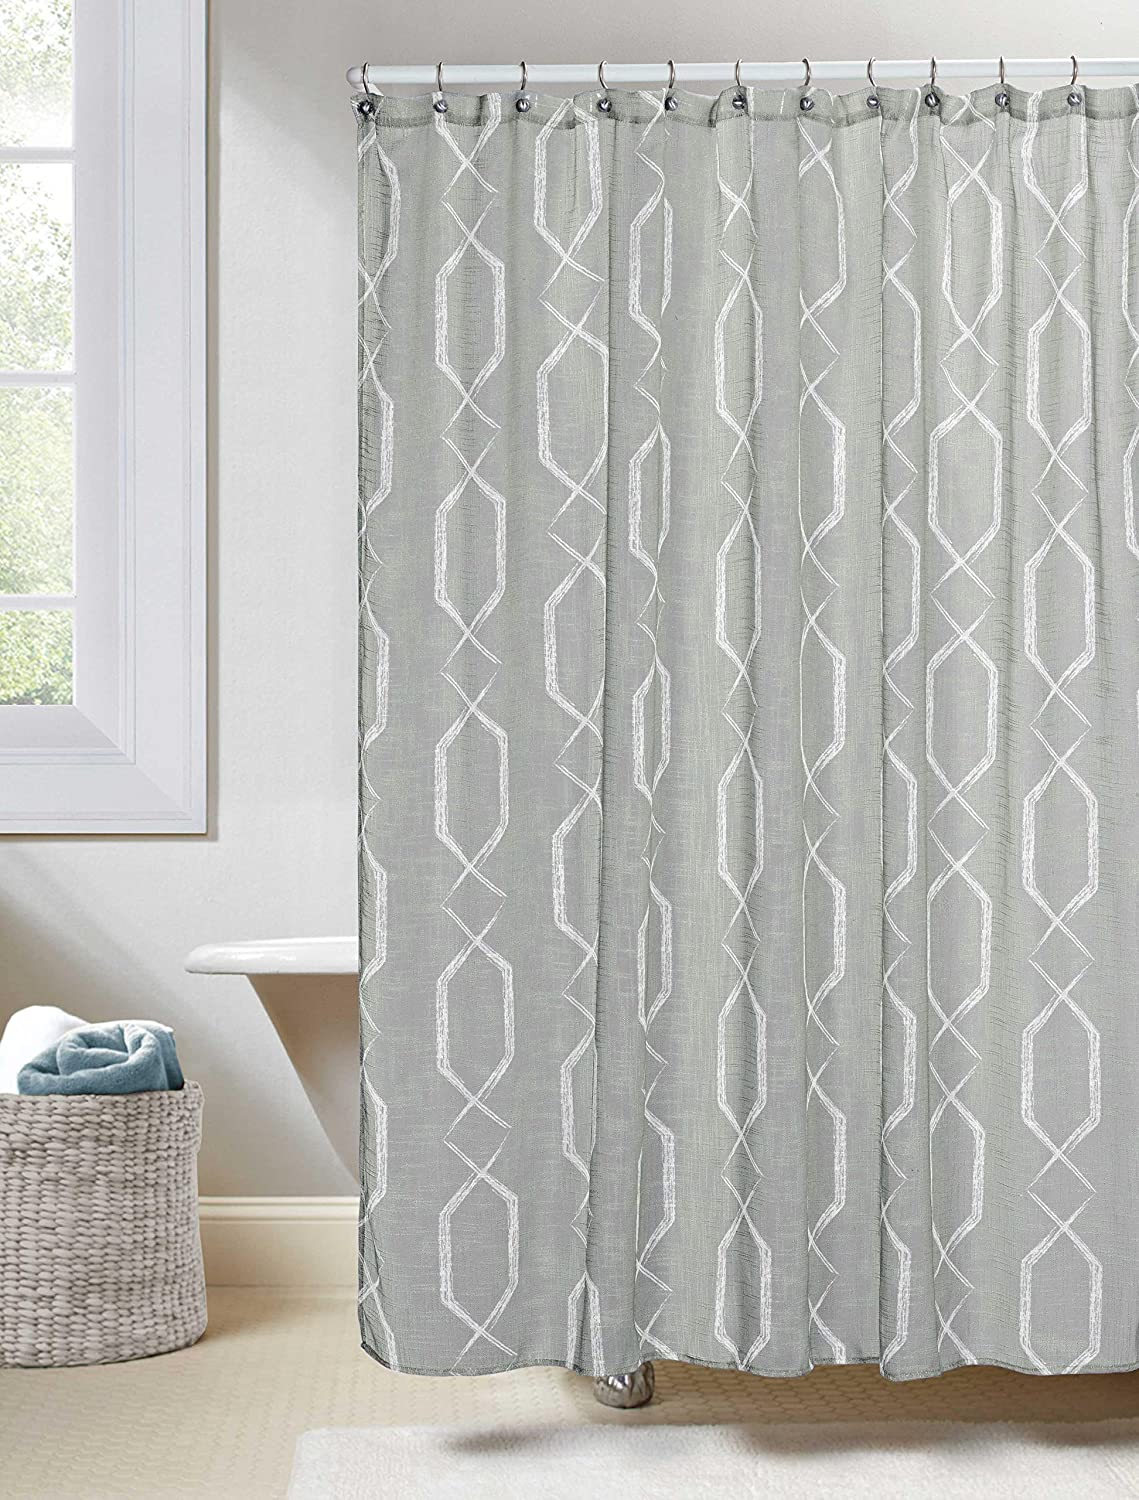 Amazon Gray Linen Textured Sheer Fabric Shower Curtain White Geometric Design 70W X 72L Home Kitchen